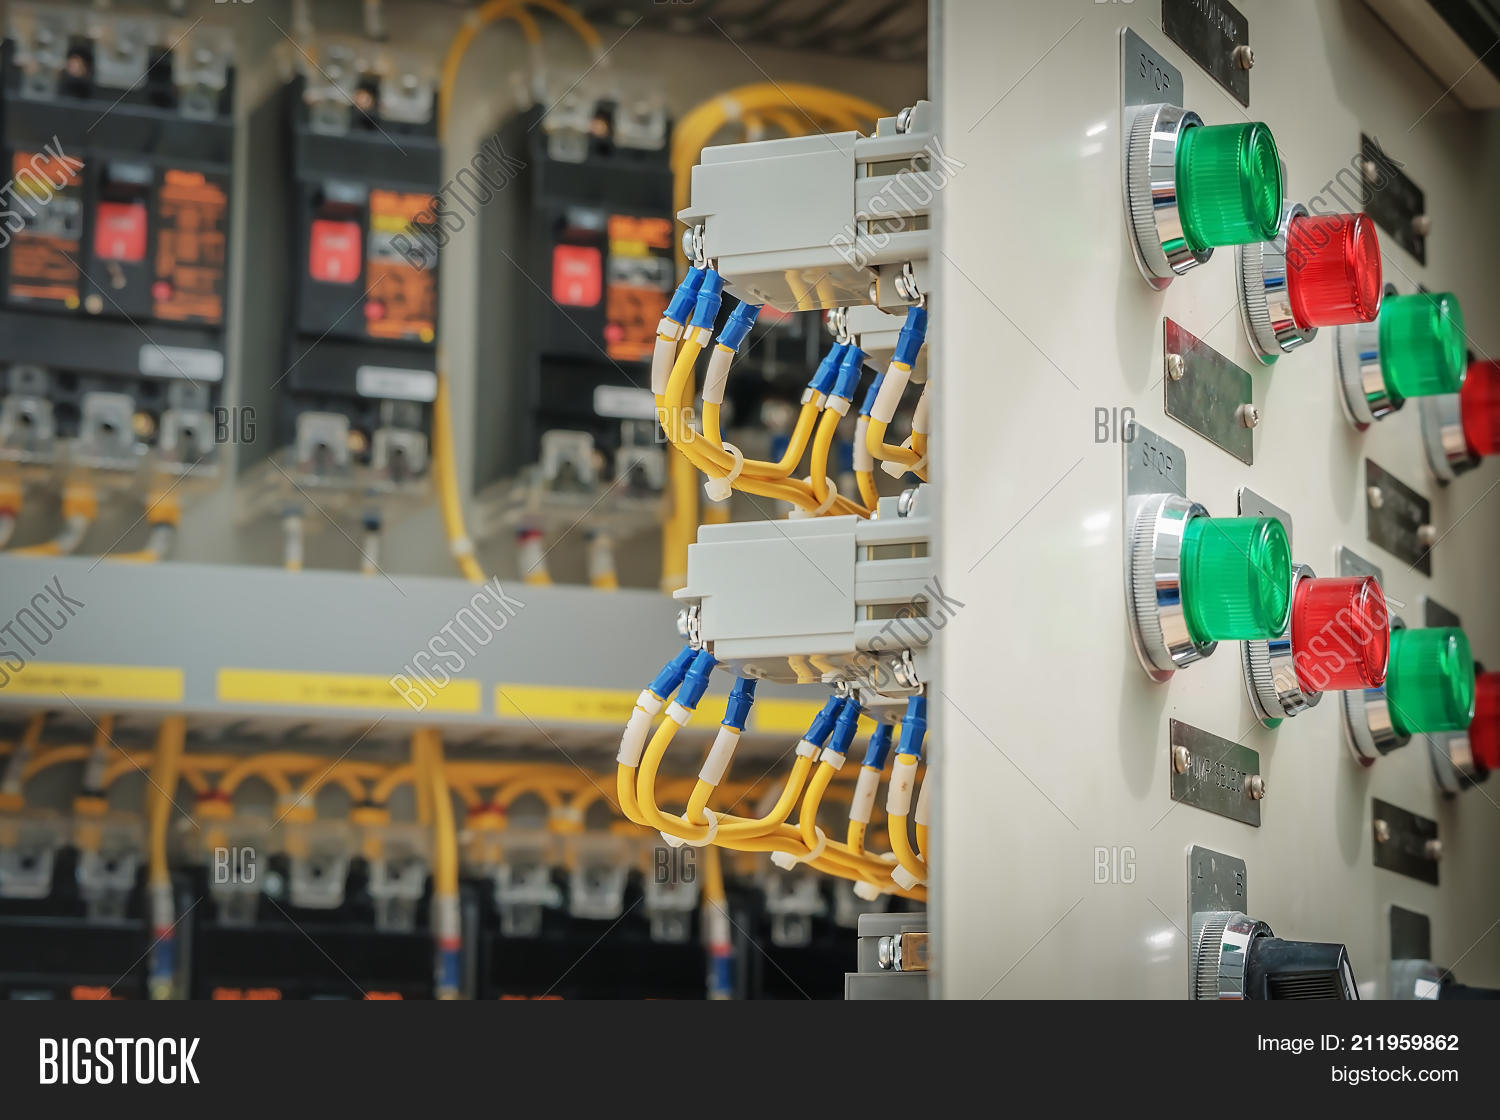 Circuit Breaker Panel Image Photo Free Trial Bigstock Wiring Board And Control In Substation Room Factory On Petrochemical Industry